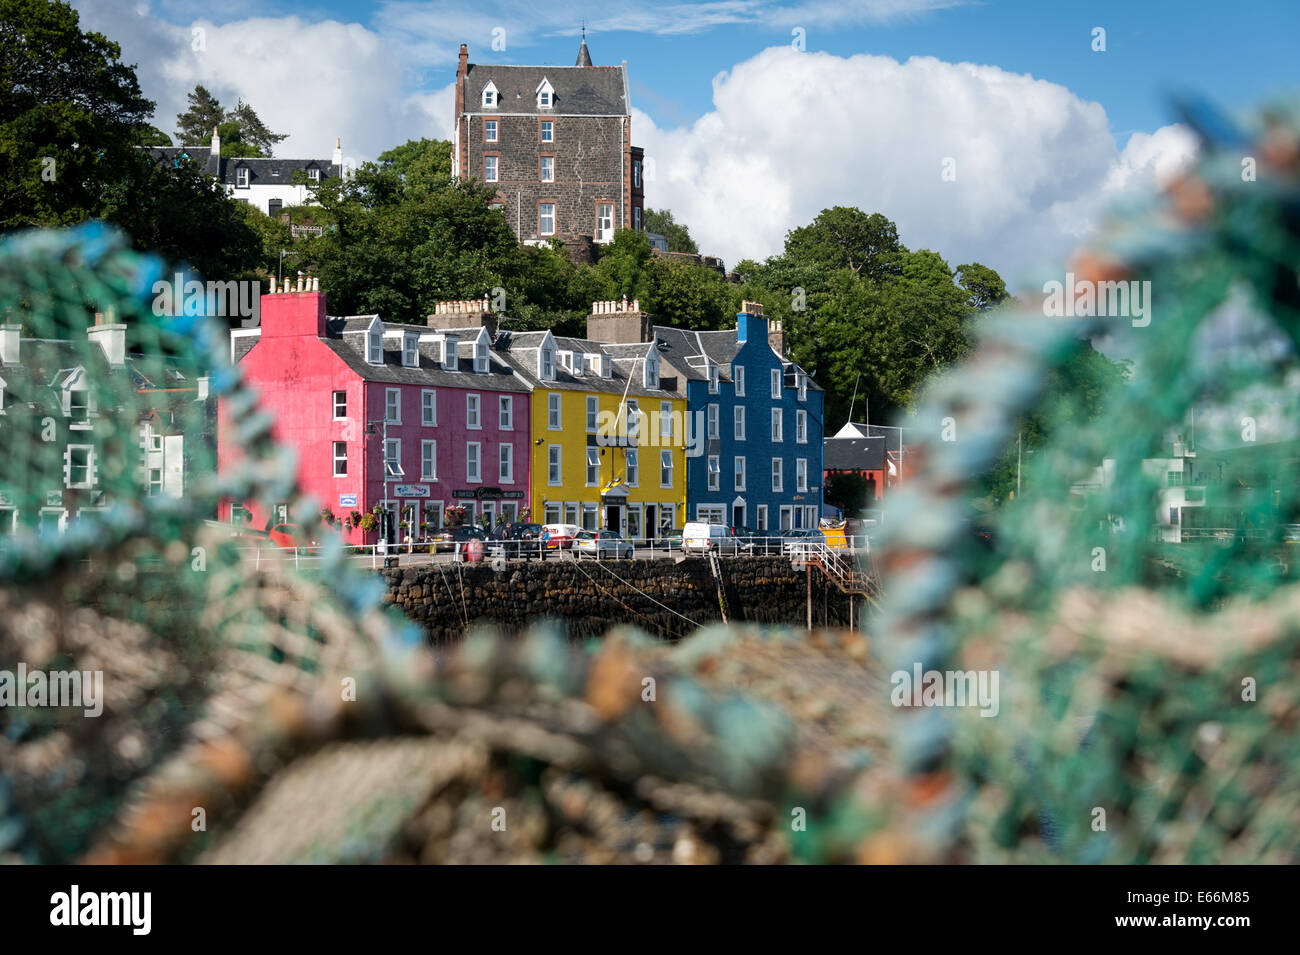 Colourful buildings on the waterfront at Tobermory, Isle of Mull, Scotland seen framed by lobster pots. Stock Photo